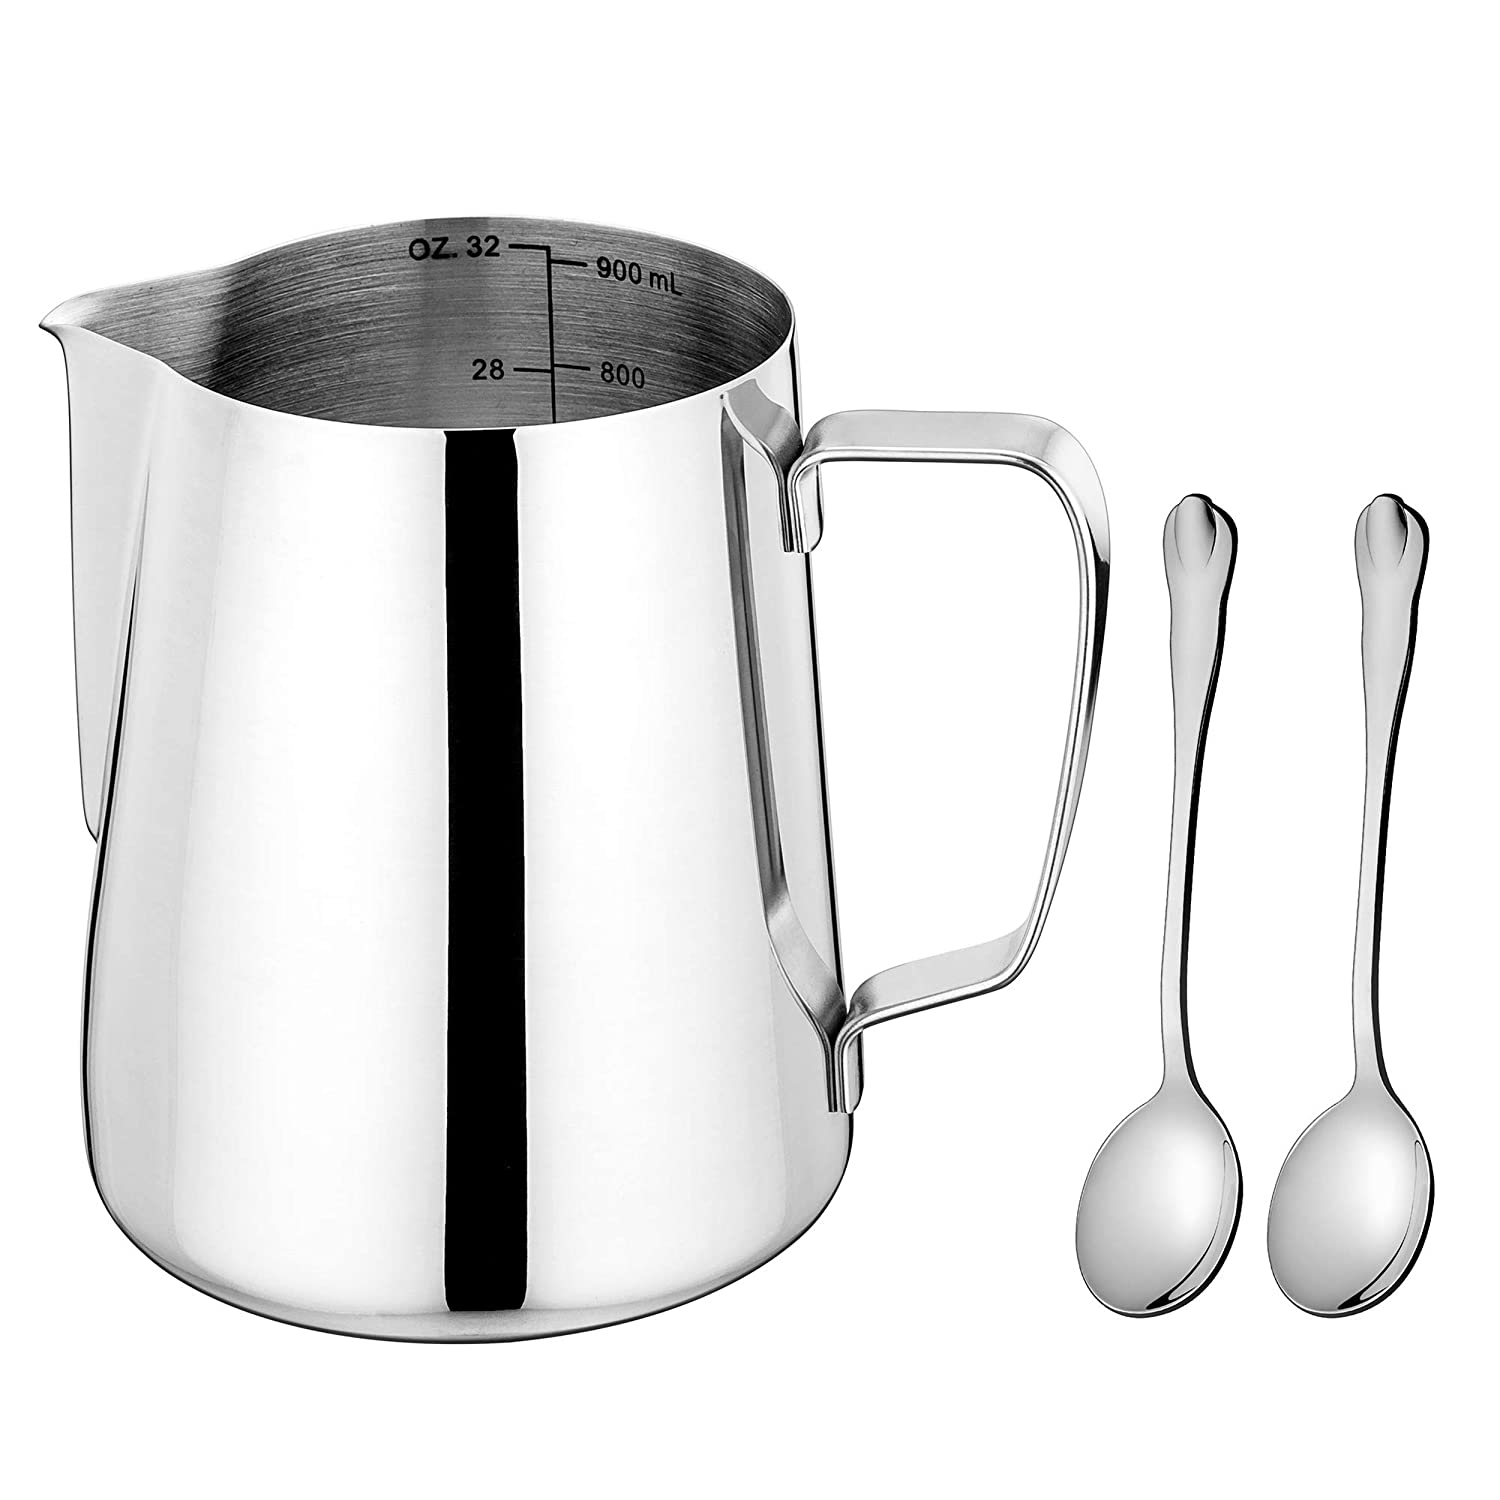 Milk Pitcher, LIANYU 32oz Frothing Pitcher, Stainless Steel Espresso Cappuccino Coffee Steaming Creamer Pitcher, Dishwasher Safe, Attached Small Tea Spoons